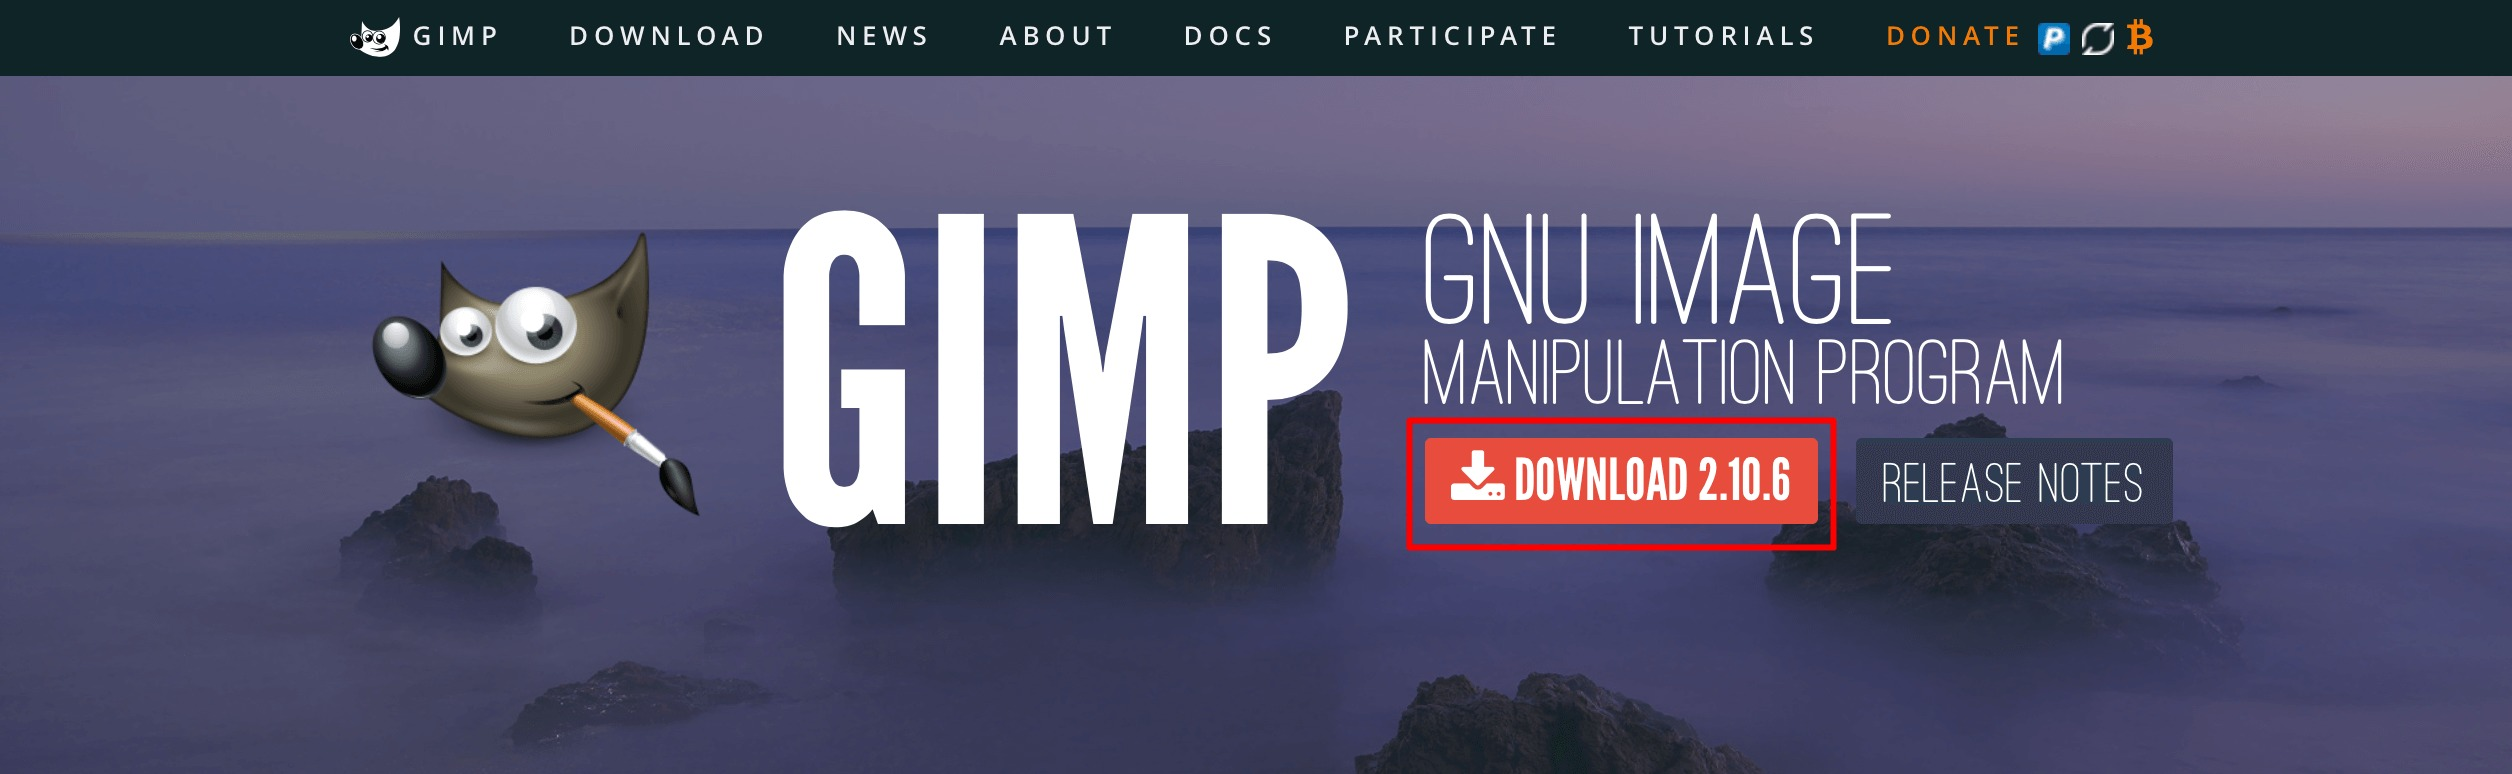 gimp-download